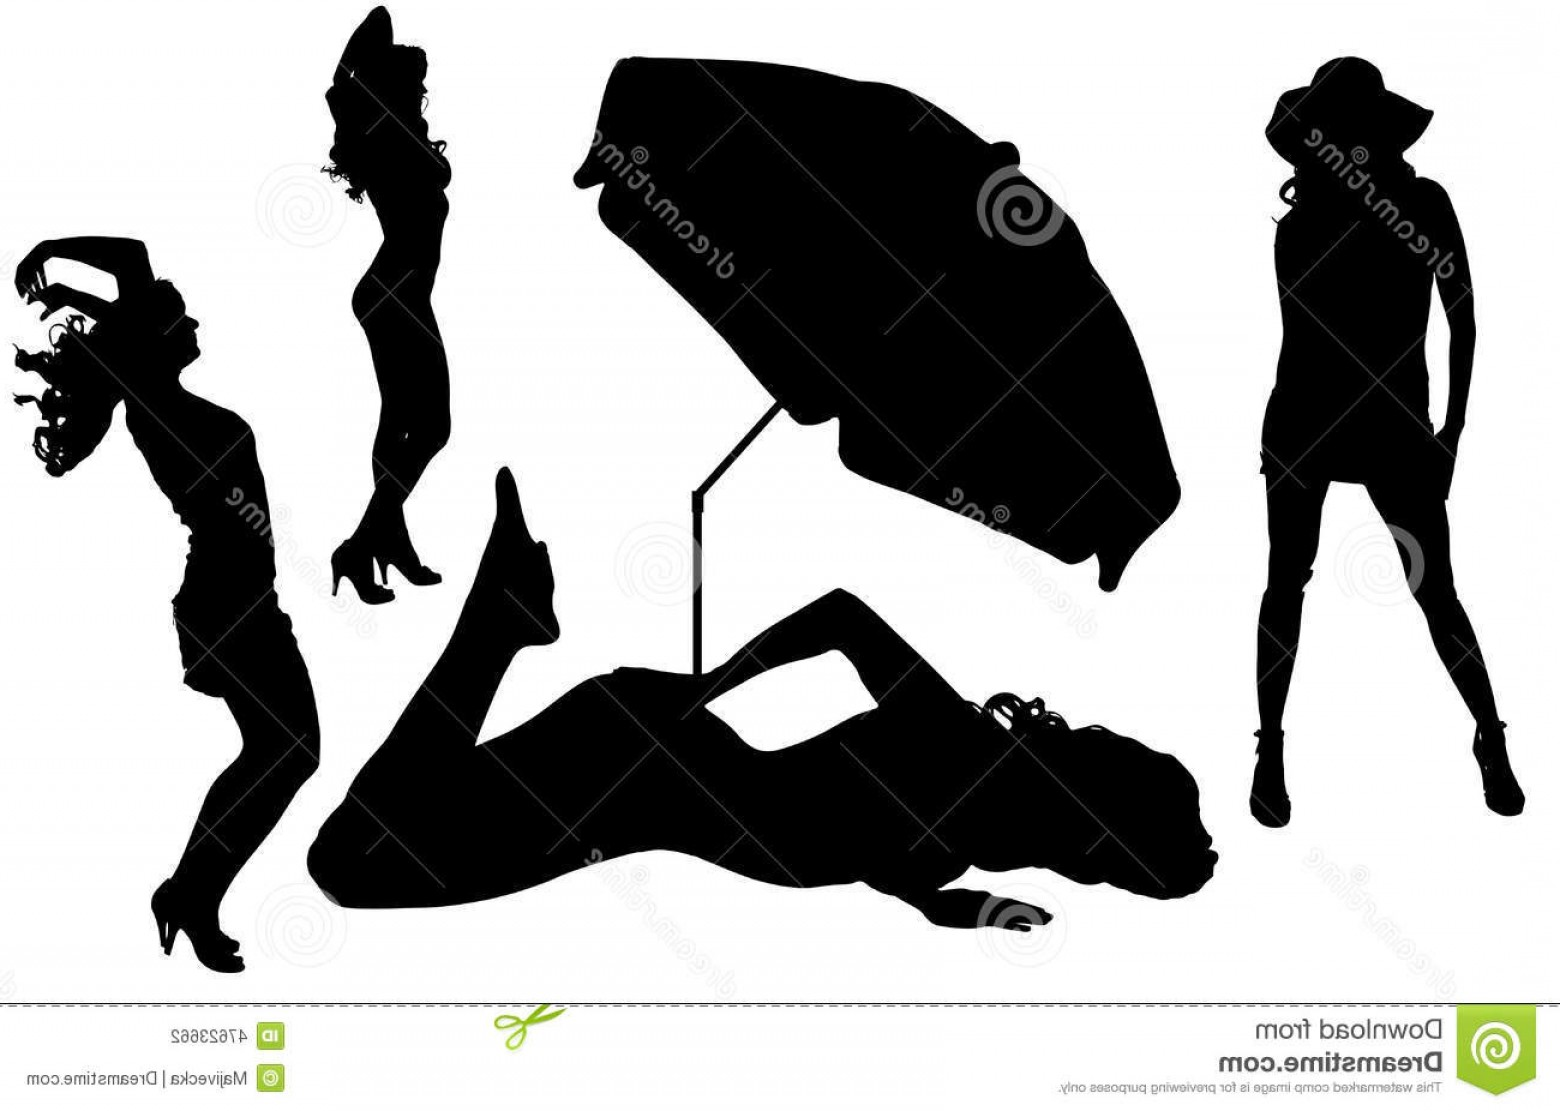 Color Guard Silhouette Vector: Stock Illustration Vector Silhouettes Women Beach White Background Image